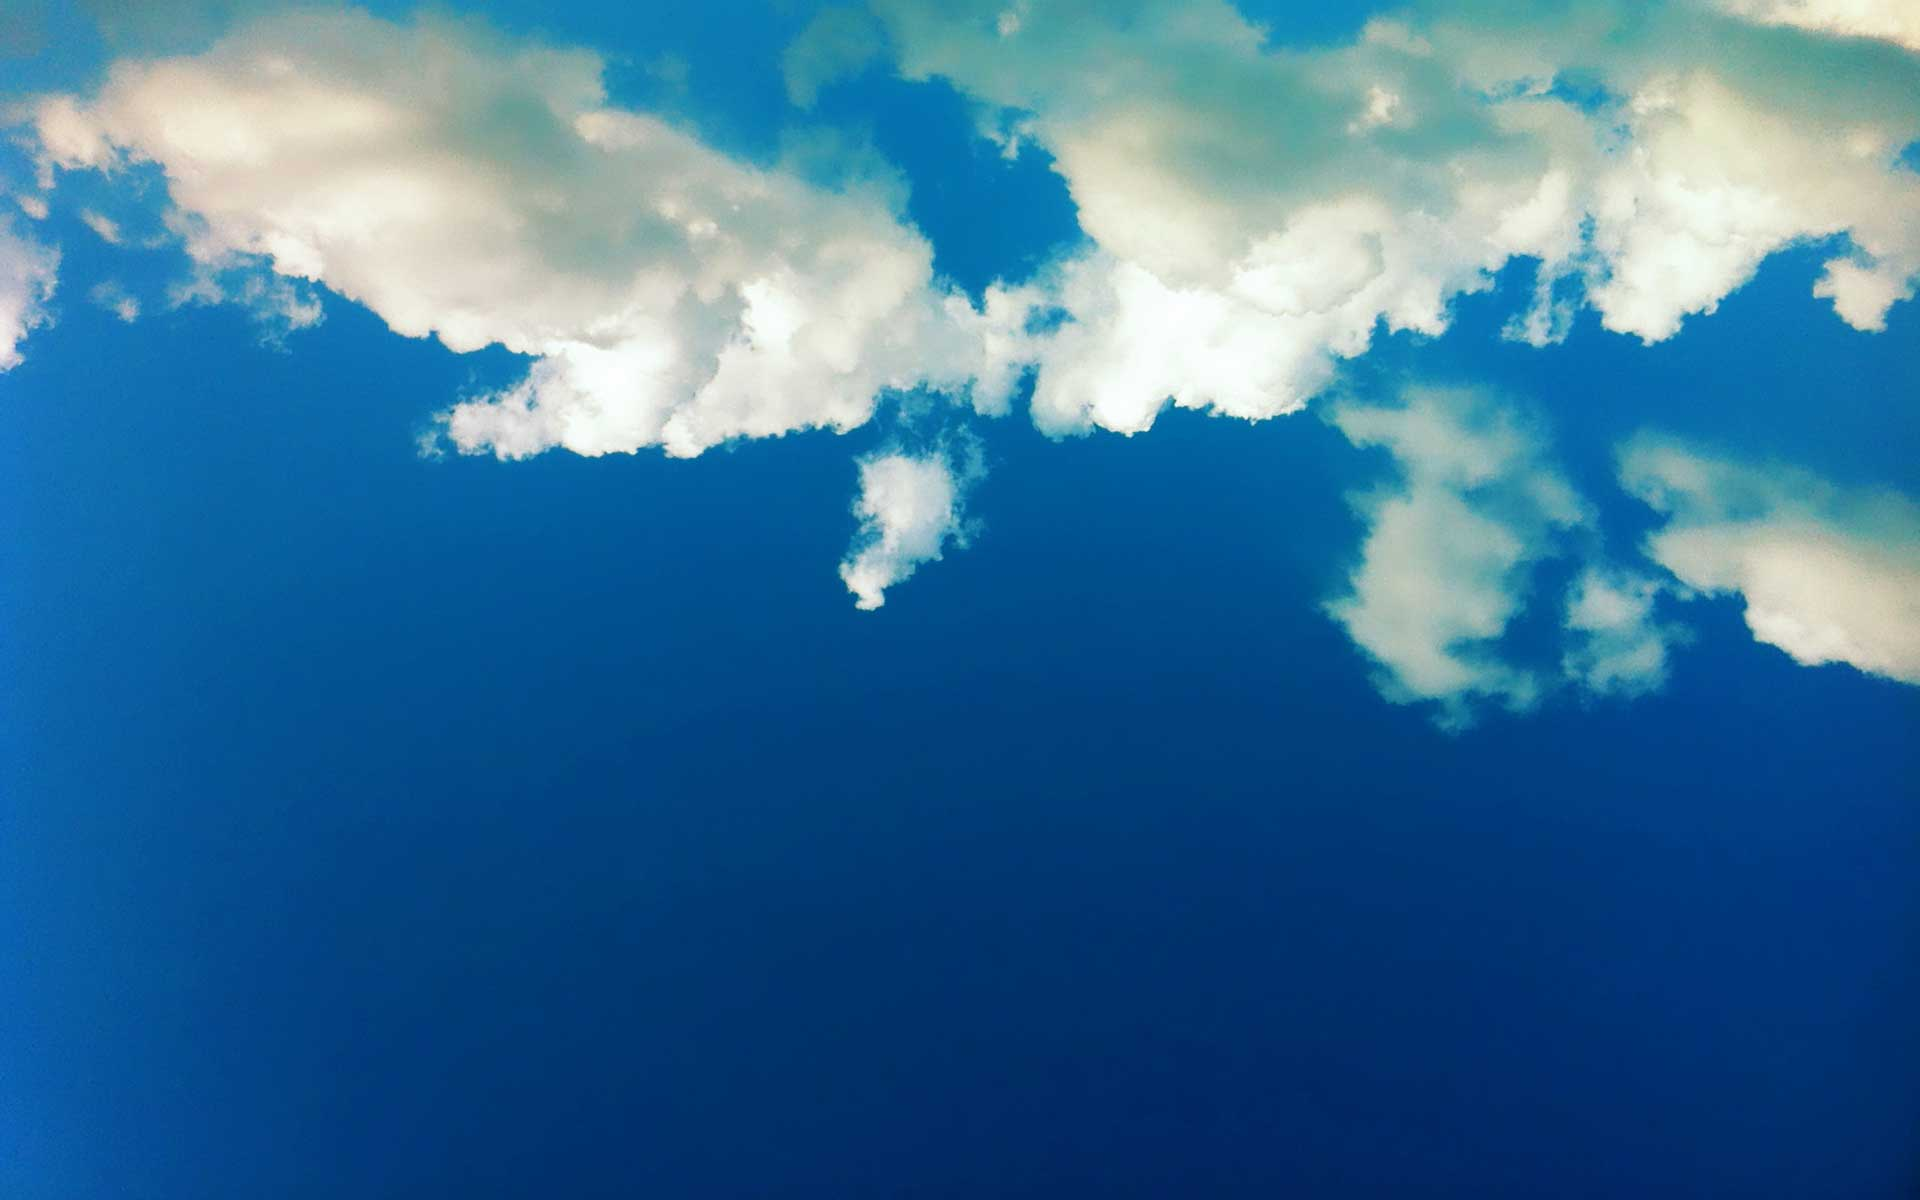 Amazing Blue Sky Wallpaper   Full HD Pictures - photo#14